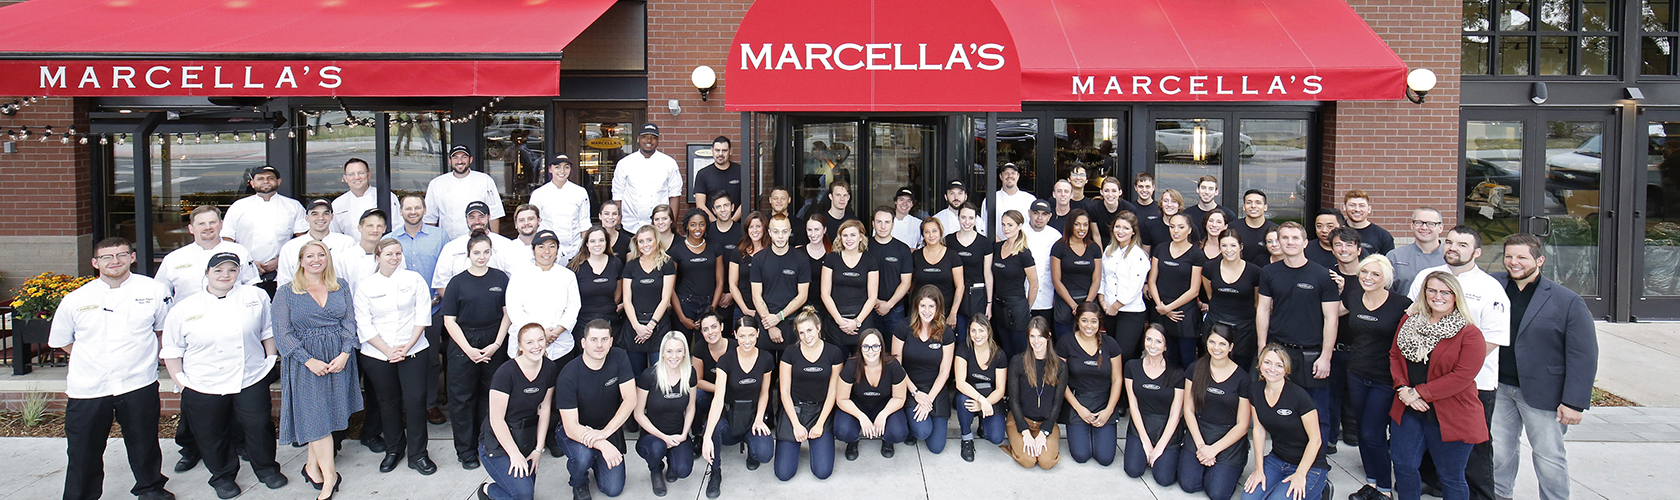 Marcella's team